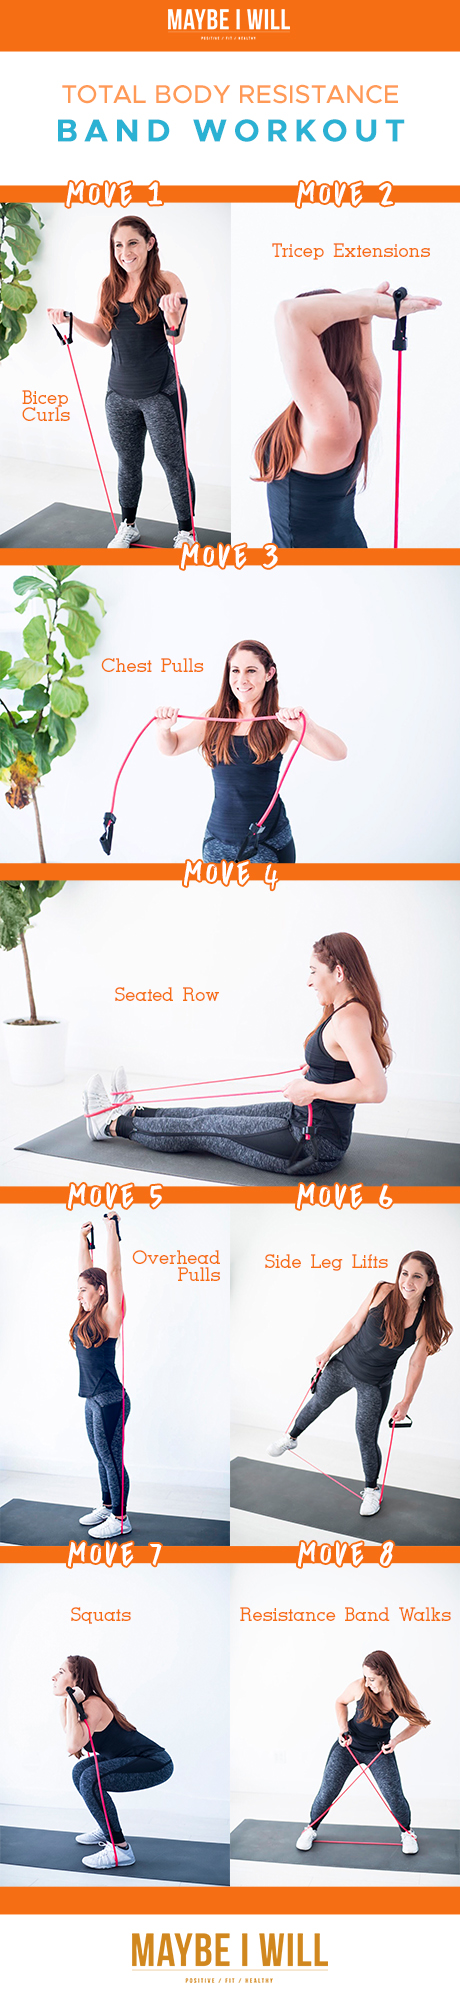 BAND WORKOUT 2000PX - TOTAL BODY RESISTANCE BAND WORKOUT